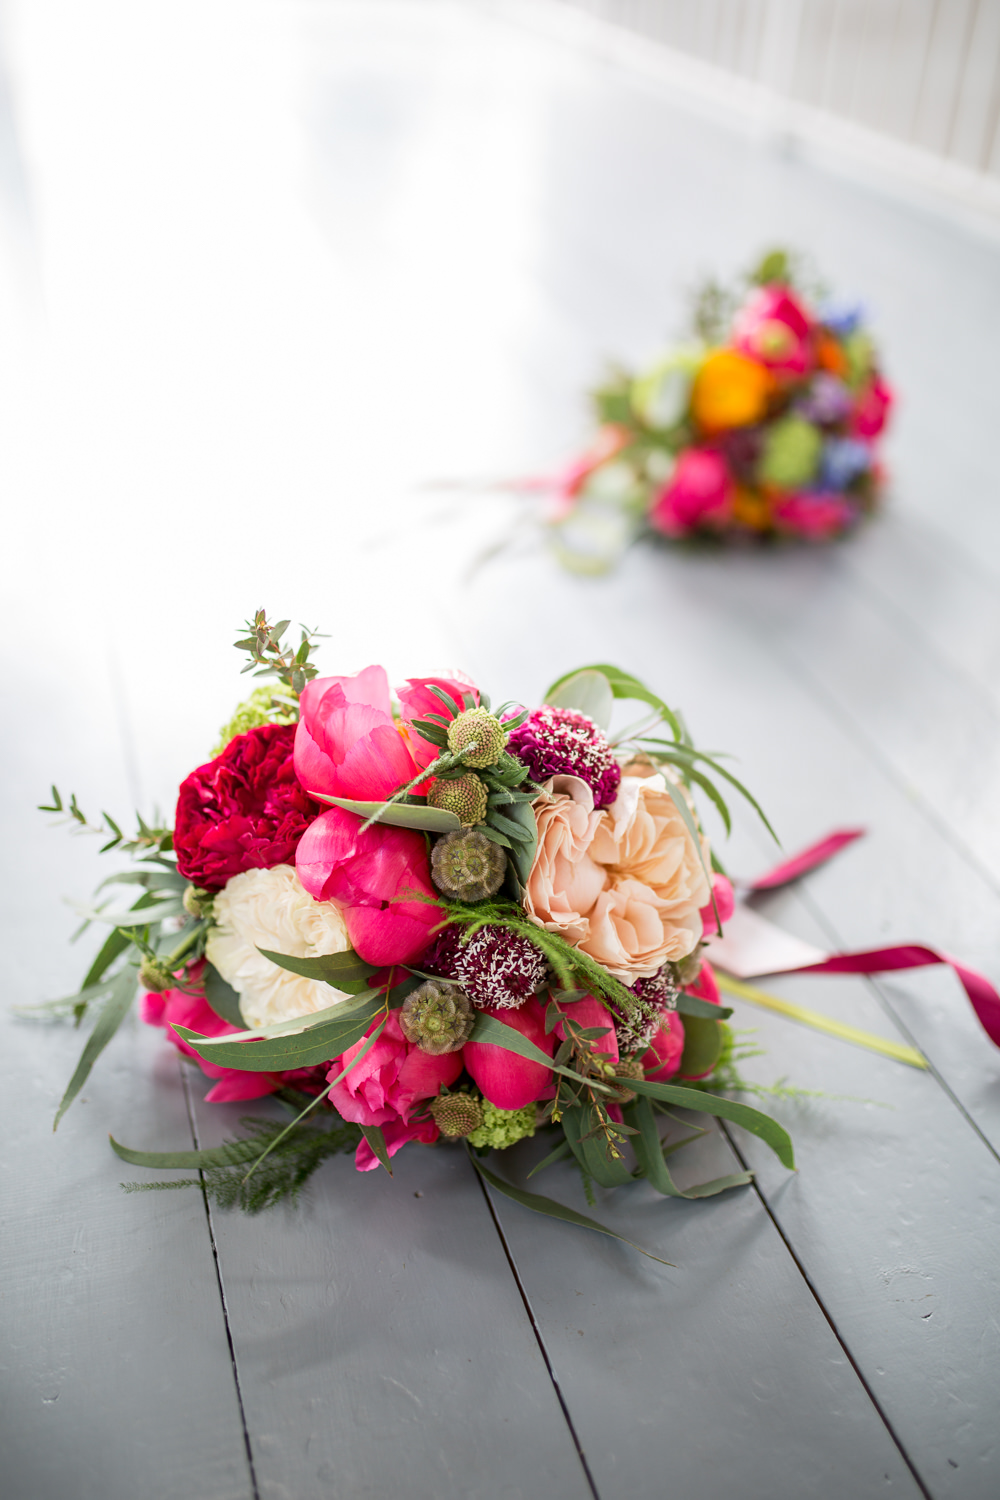 Bouquet Flowers Bride Bridal Pink Peony Rose Colourful Balloons Wedding Ideas Florence Berry Photography